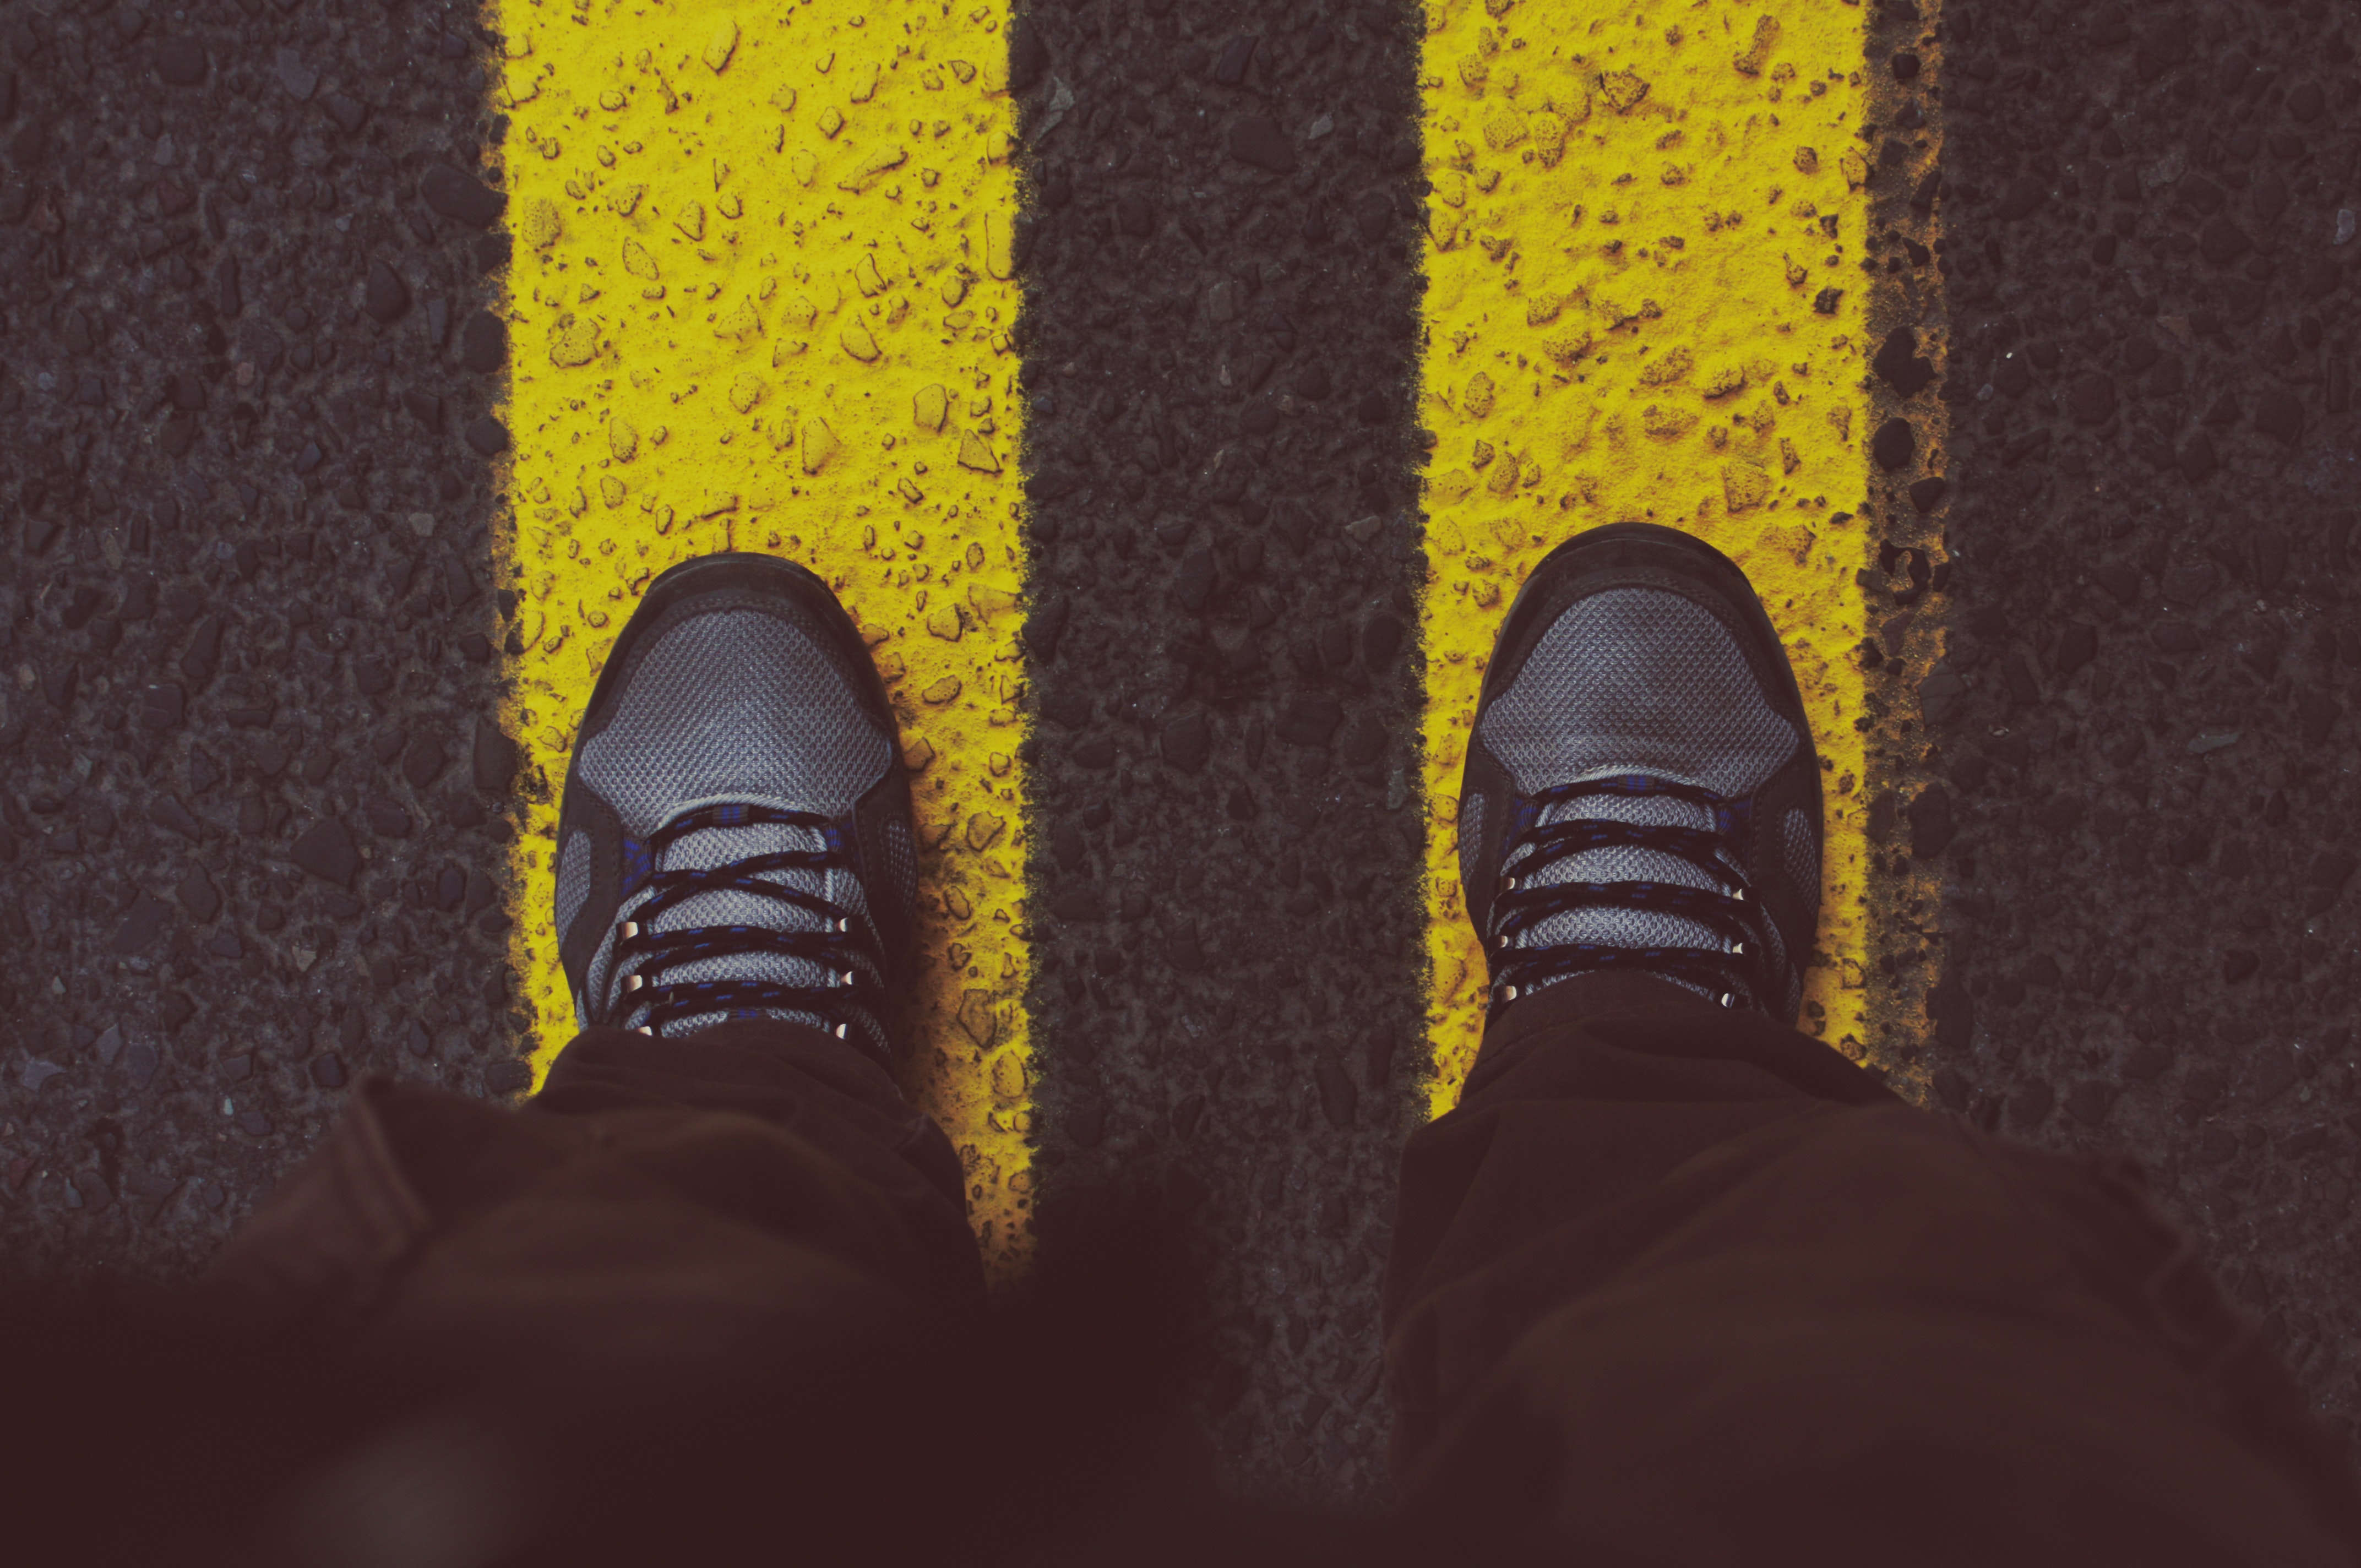 Person in gray sneakers standing on pedestrian lane photo